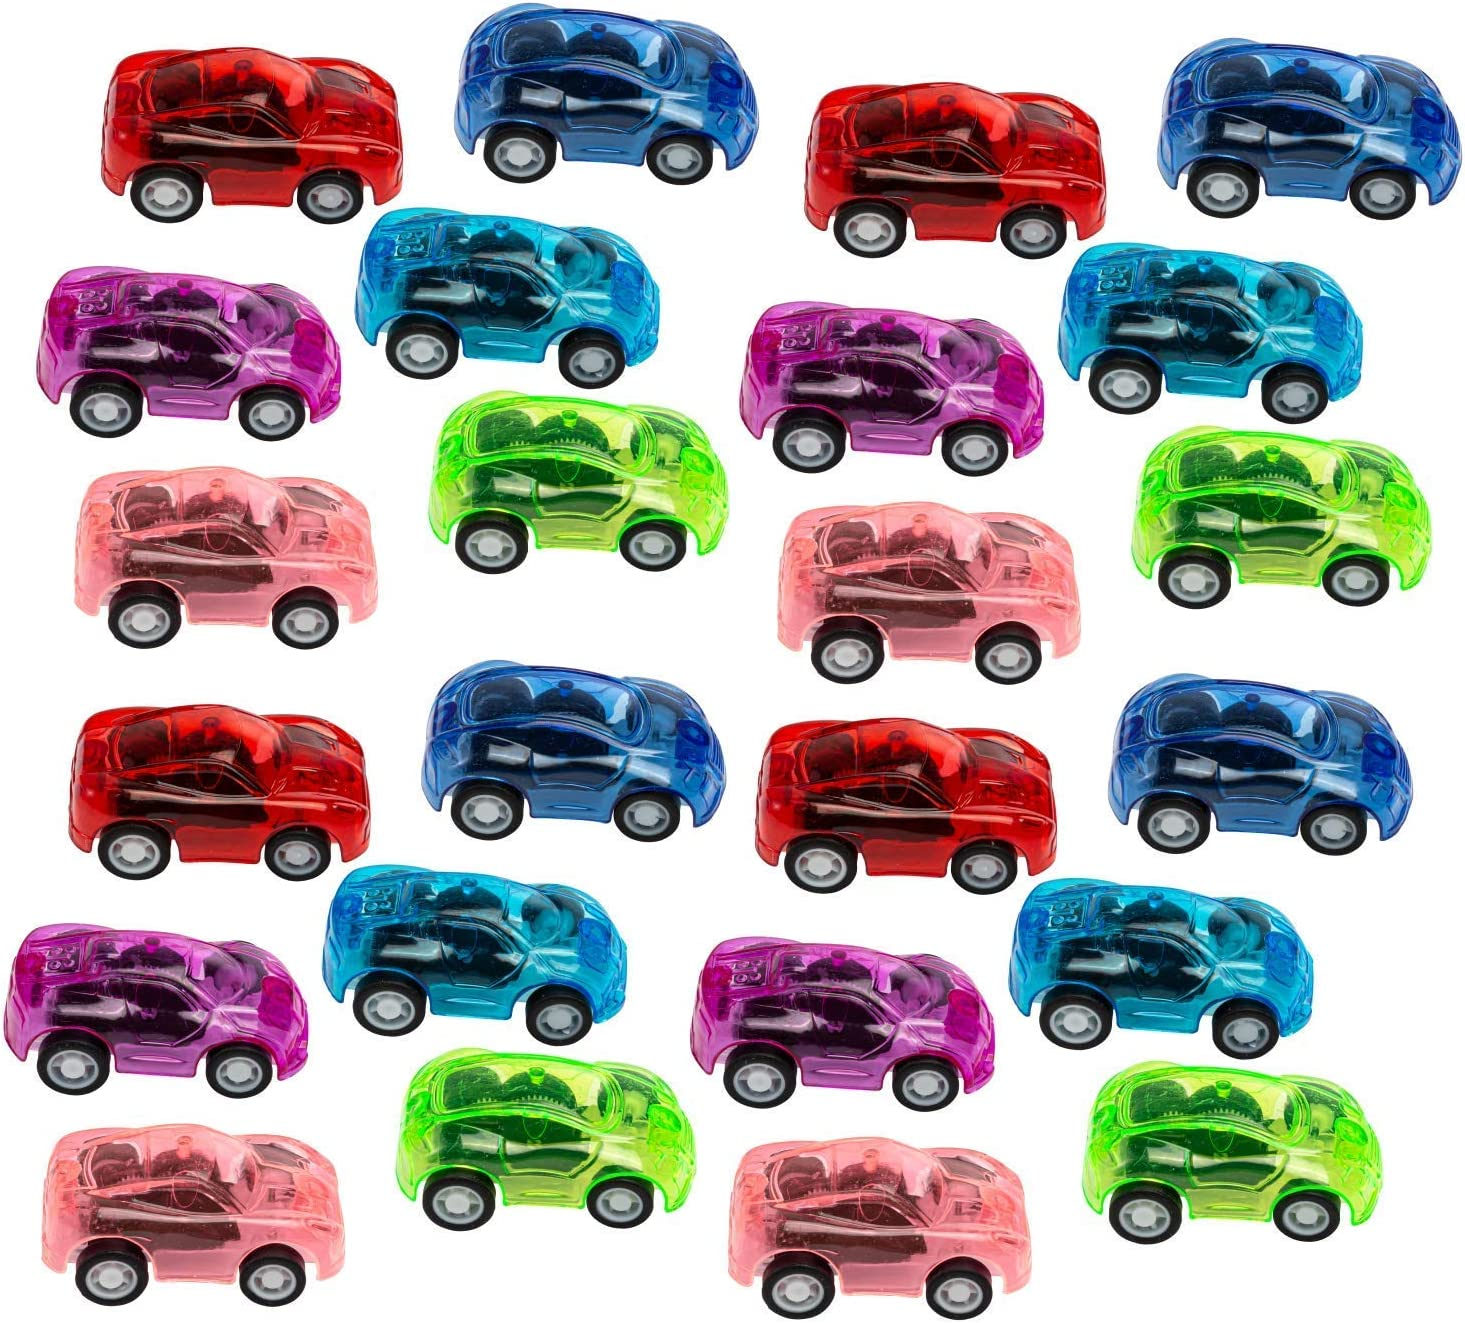 Dazzling Toys Pull Back Cars Mini Friction Toy Cars For Boys & Girls | Assorted Colorful Pullback Vehicles Are Great Birthday Party Favors, Goodie Bag Fillers, Reward, Carnival & Contest Prizes (24 Pack)